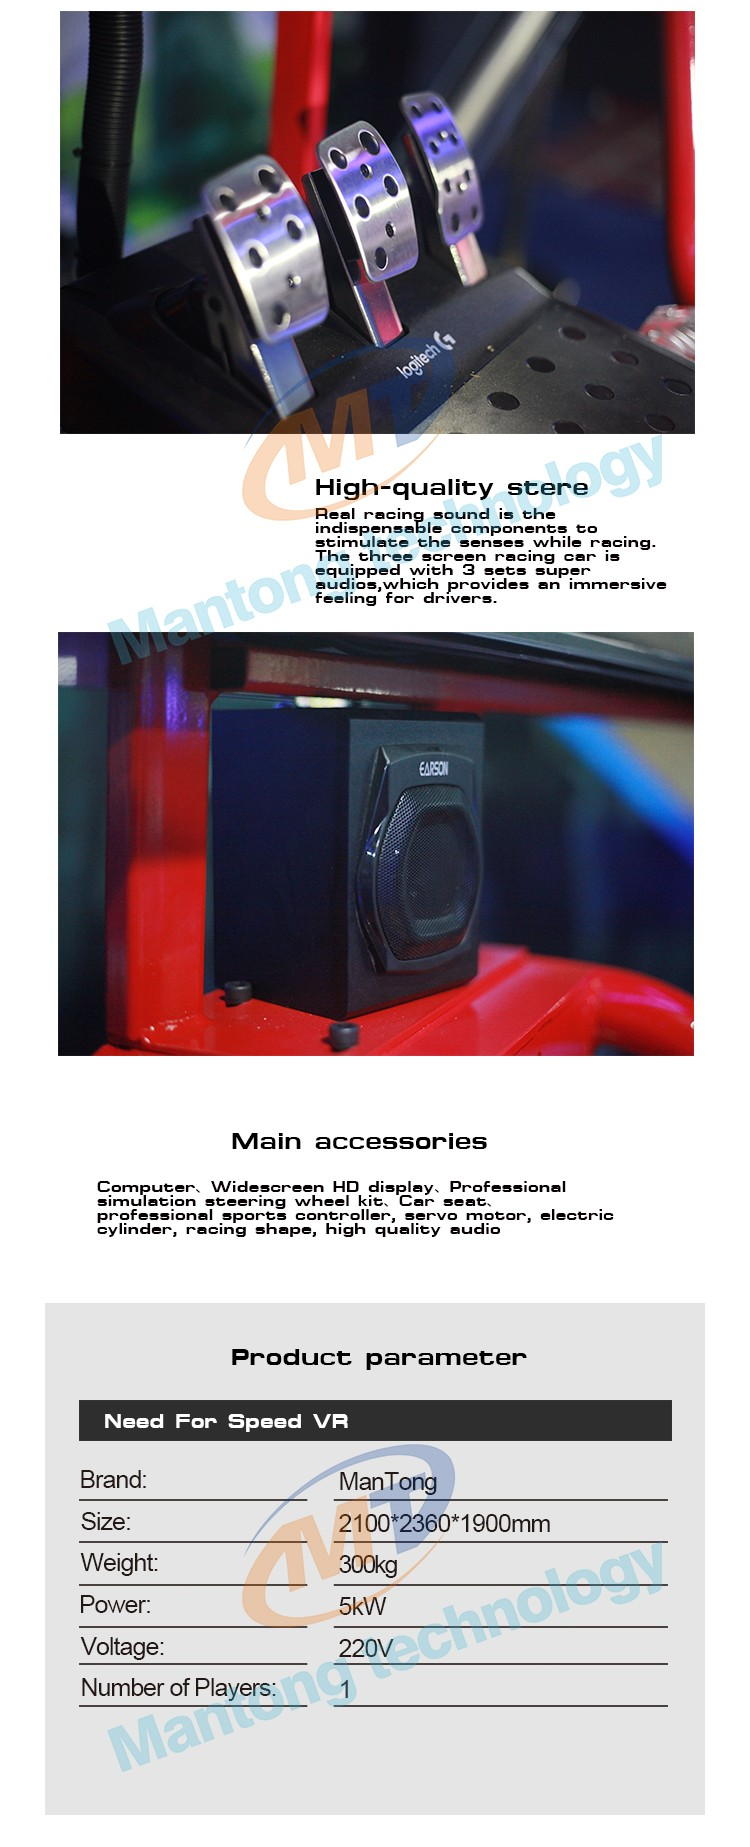 Mantong dirt driving 6 dof 3 screen racing motion car simulator arcade game machine for game world funny land